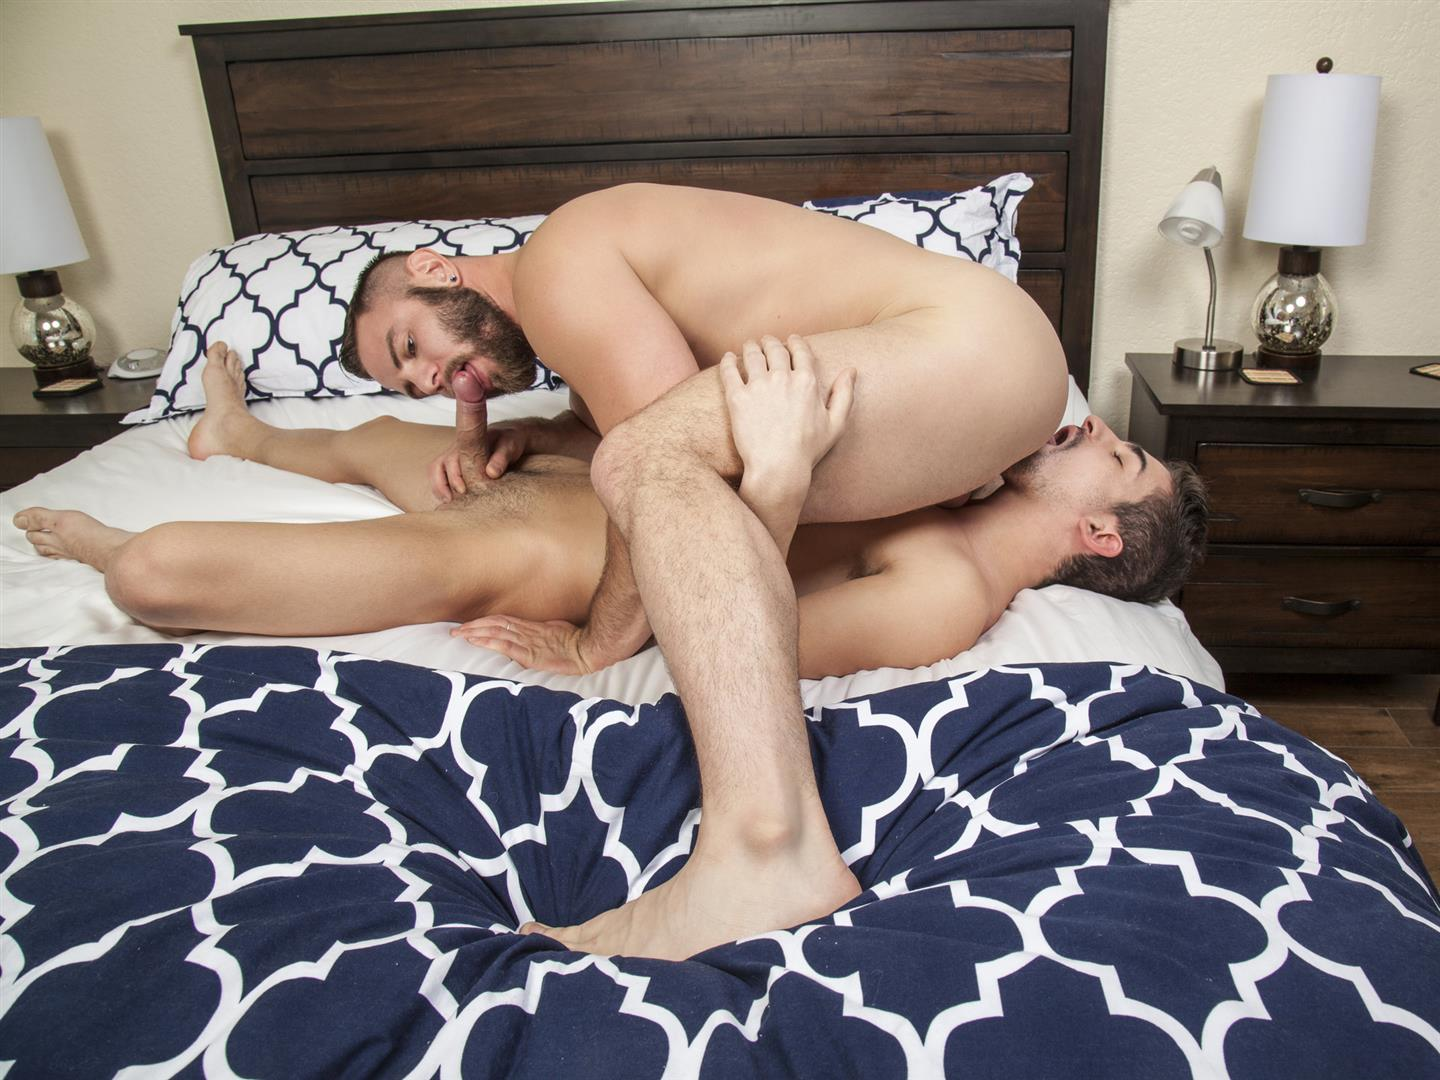 Randy-Blue-Nick-Sterling-and-Lukas-Valentine-Beefy-Cub-Bareback-Sex-Amateur-Gay-Porn-29 Beefy Nick Sterling Barebacks Lukas Valentine With His Thick Cock